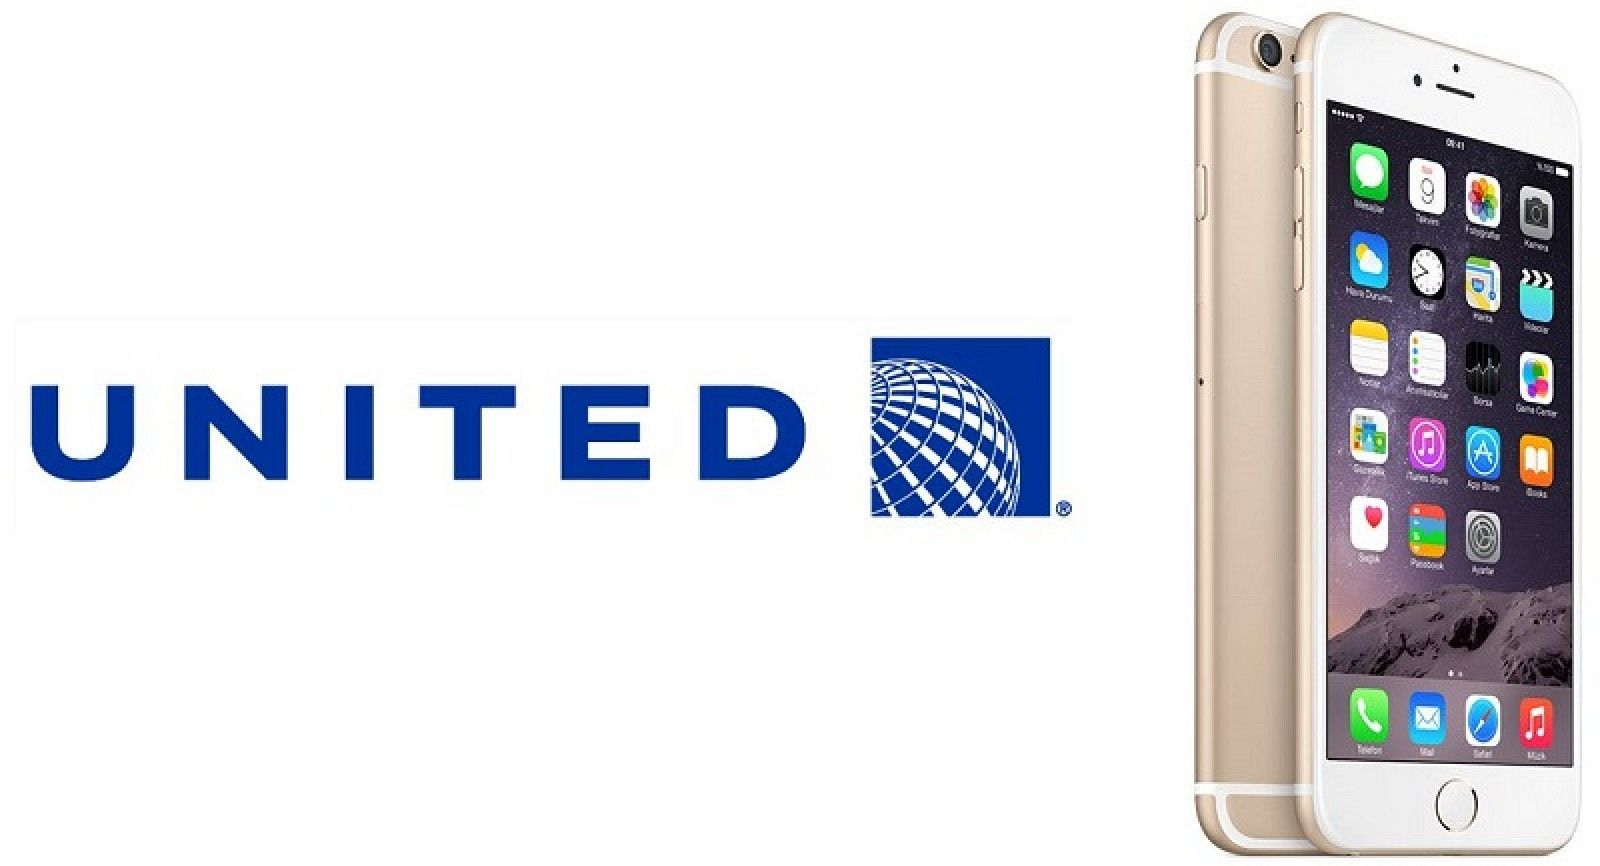 United Airlines to Equip 6,000 Customer Service